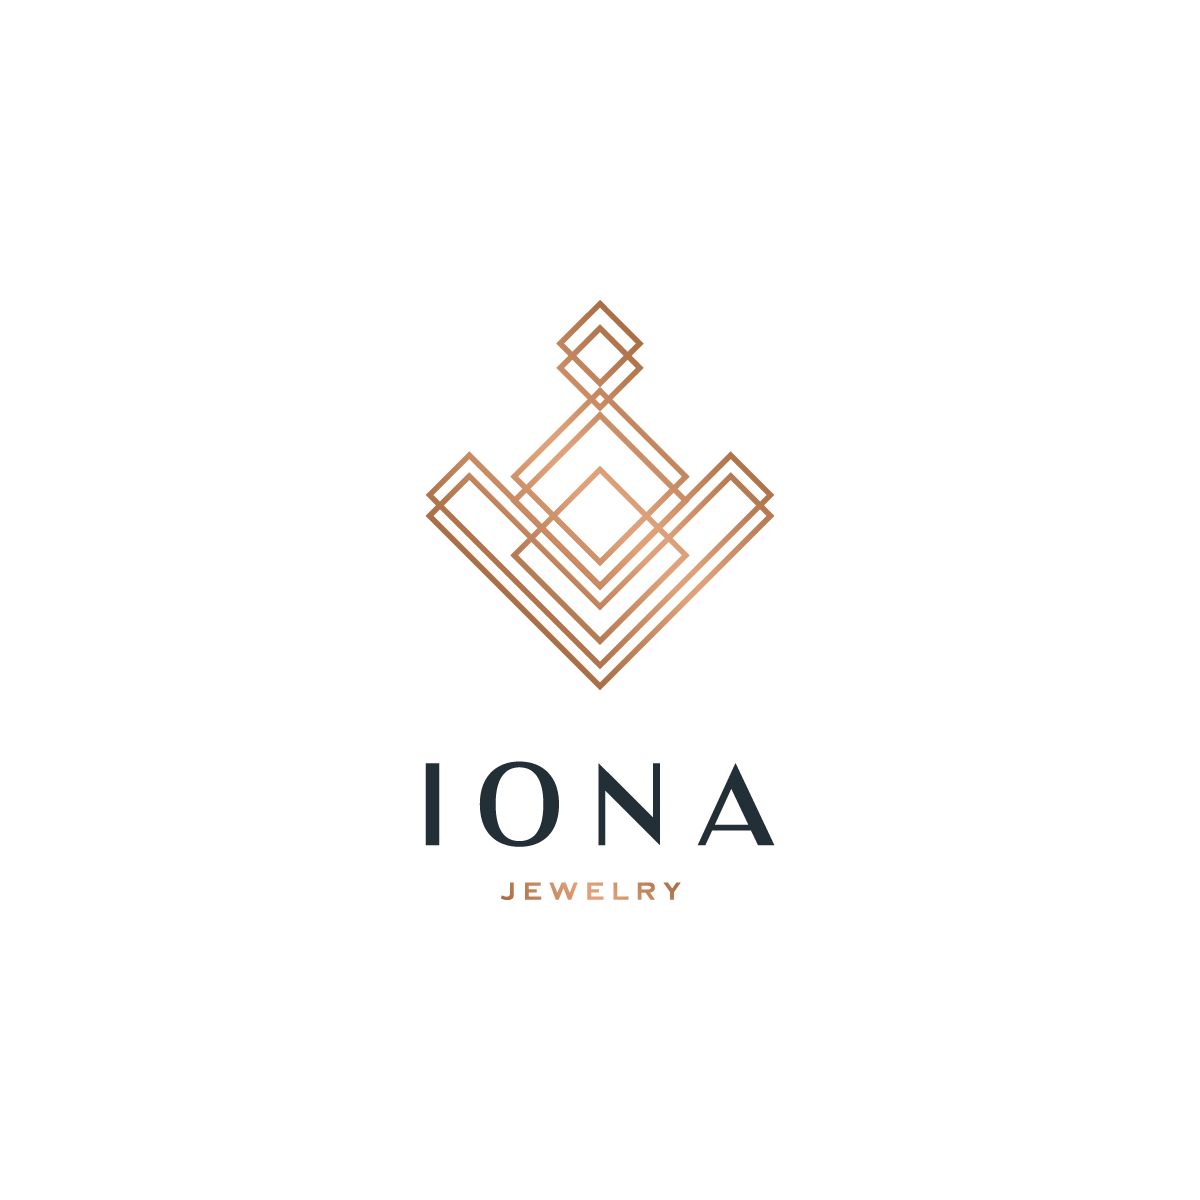 Mythical IONA looking for upscale jewelry design